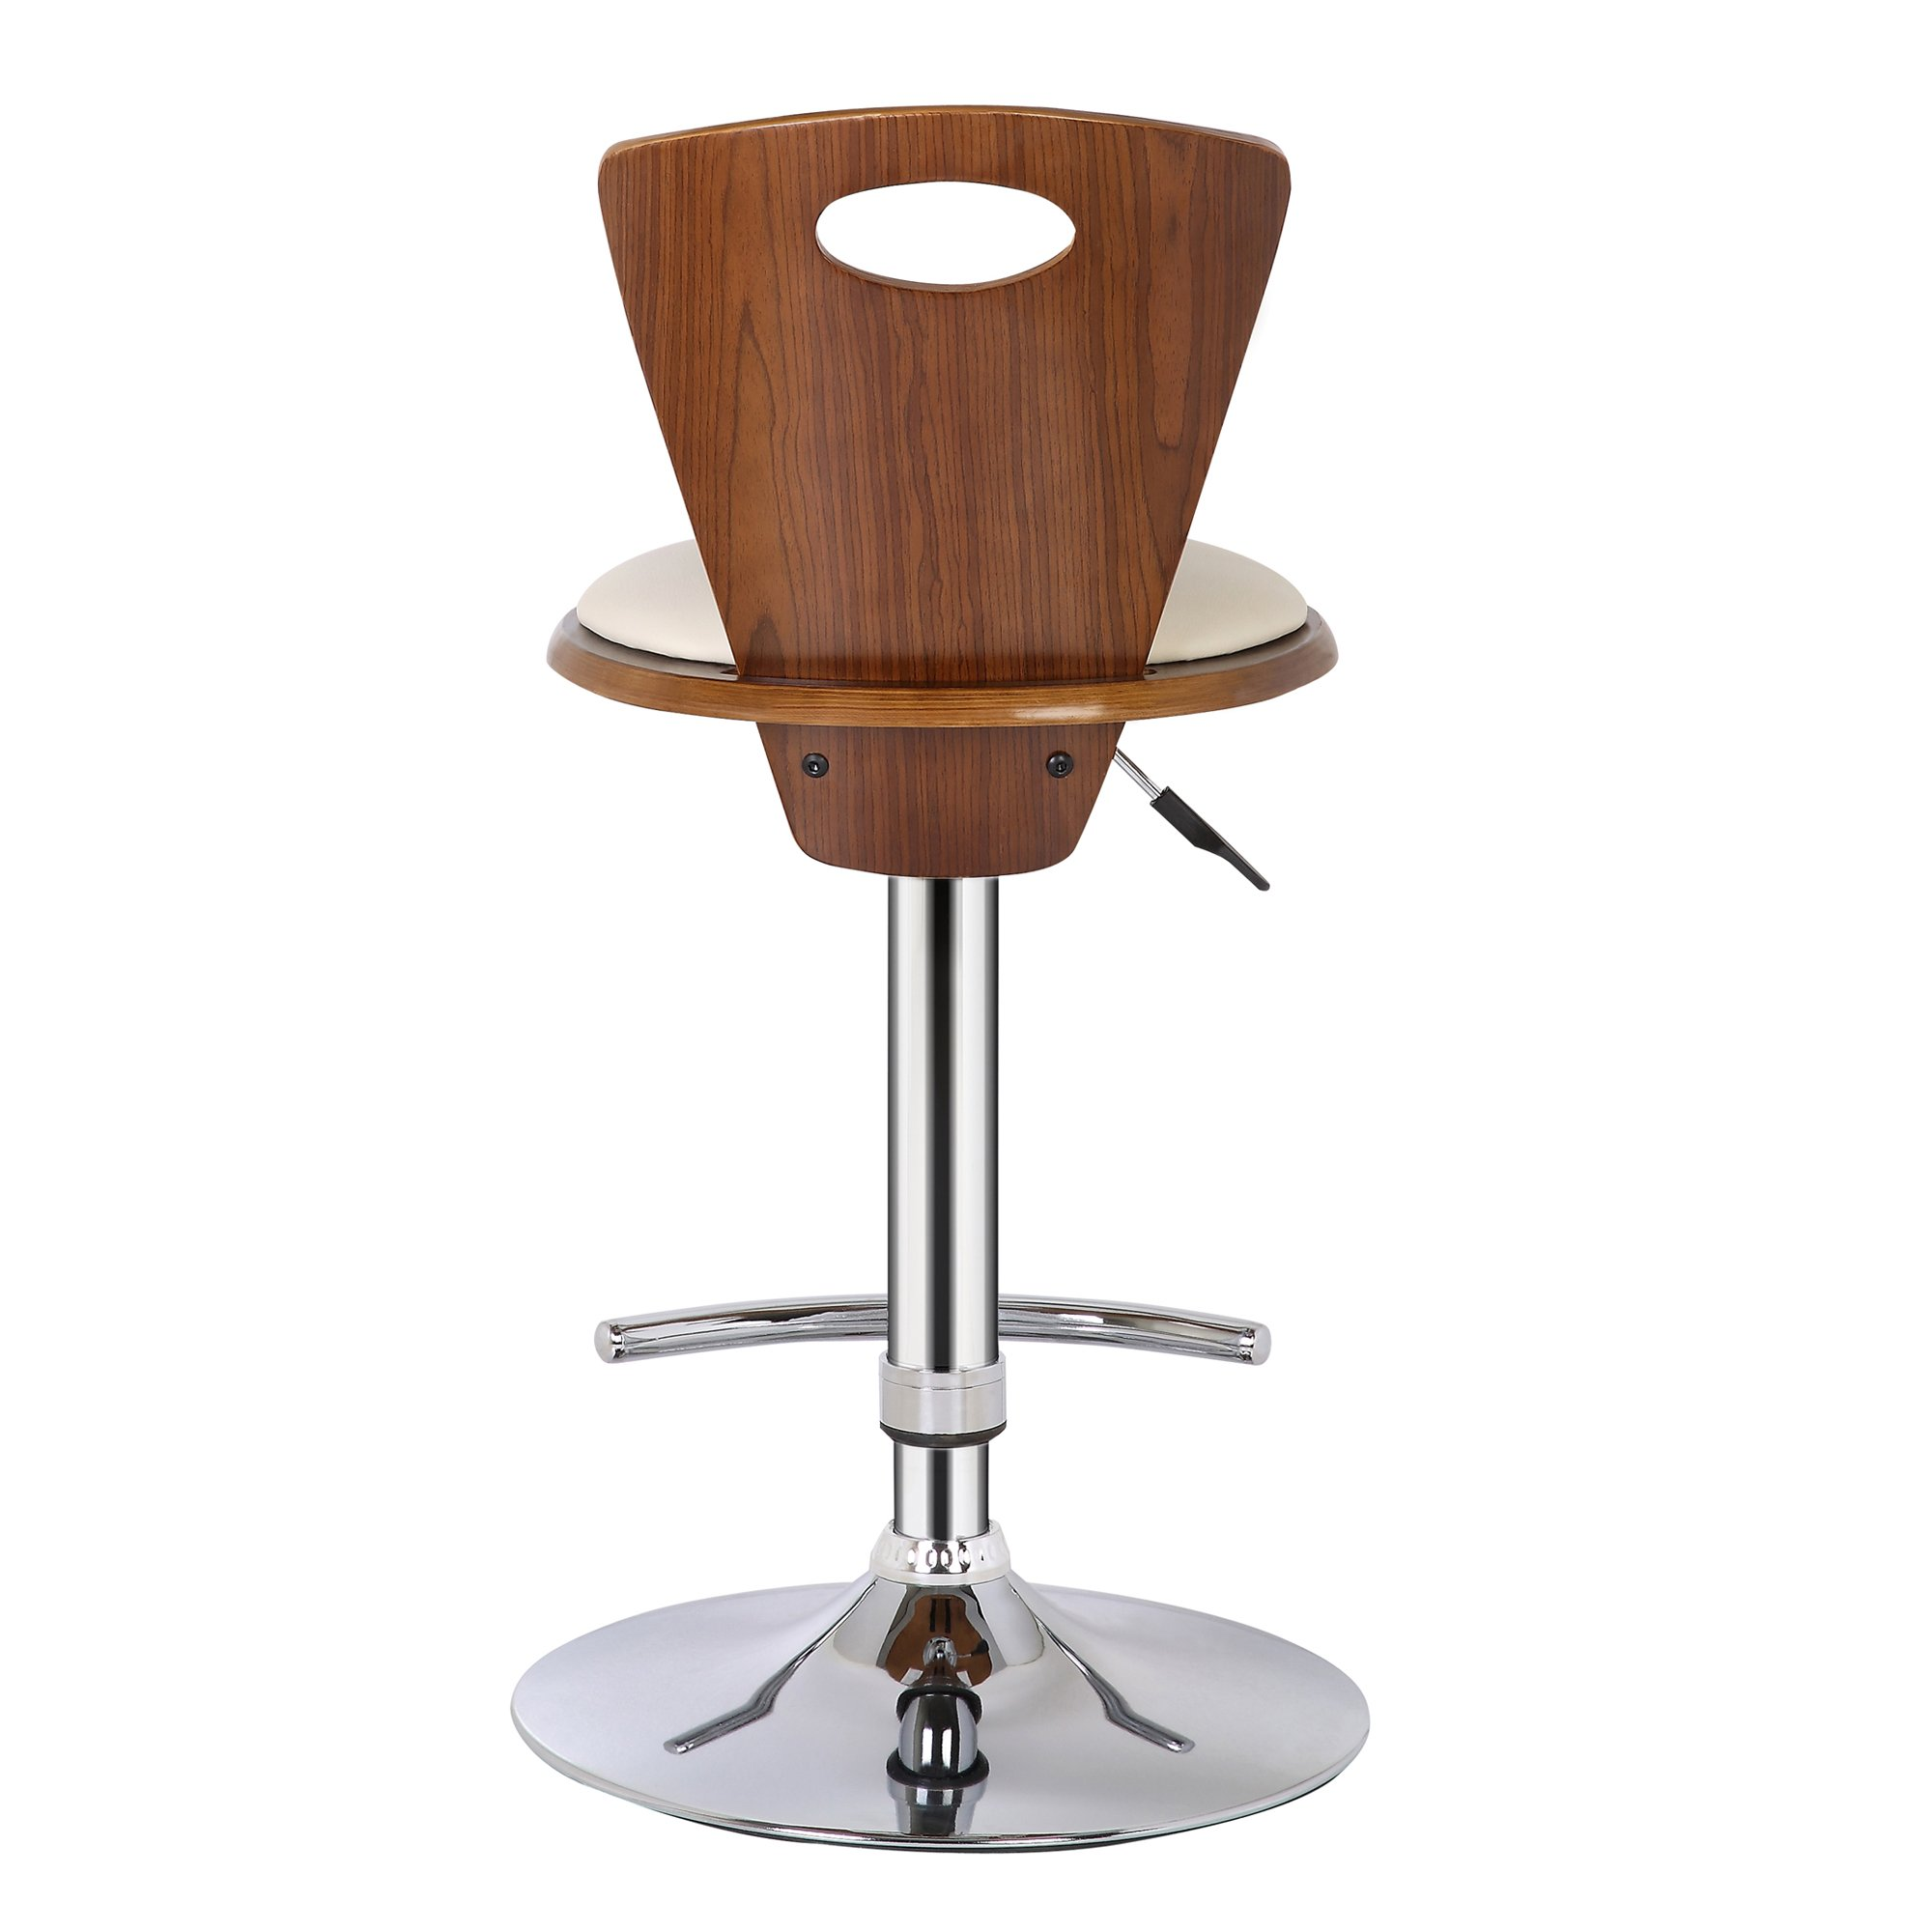 Armen Living LCSEBACRWA Seattle Barstool in Cream Faux Leather, Walnut Wood and Chrome Finish by Armen Living (Image #3)